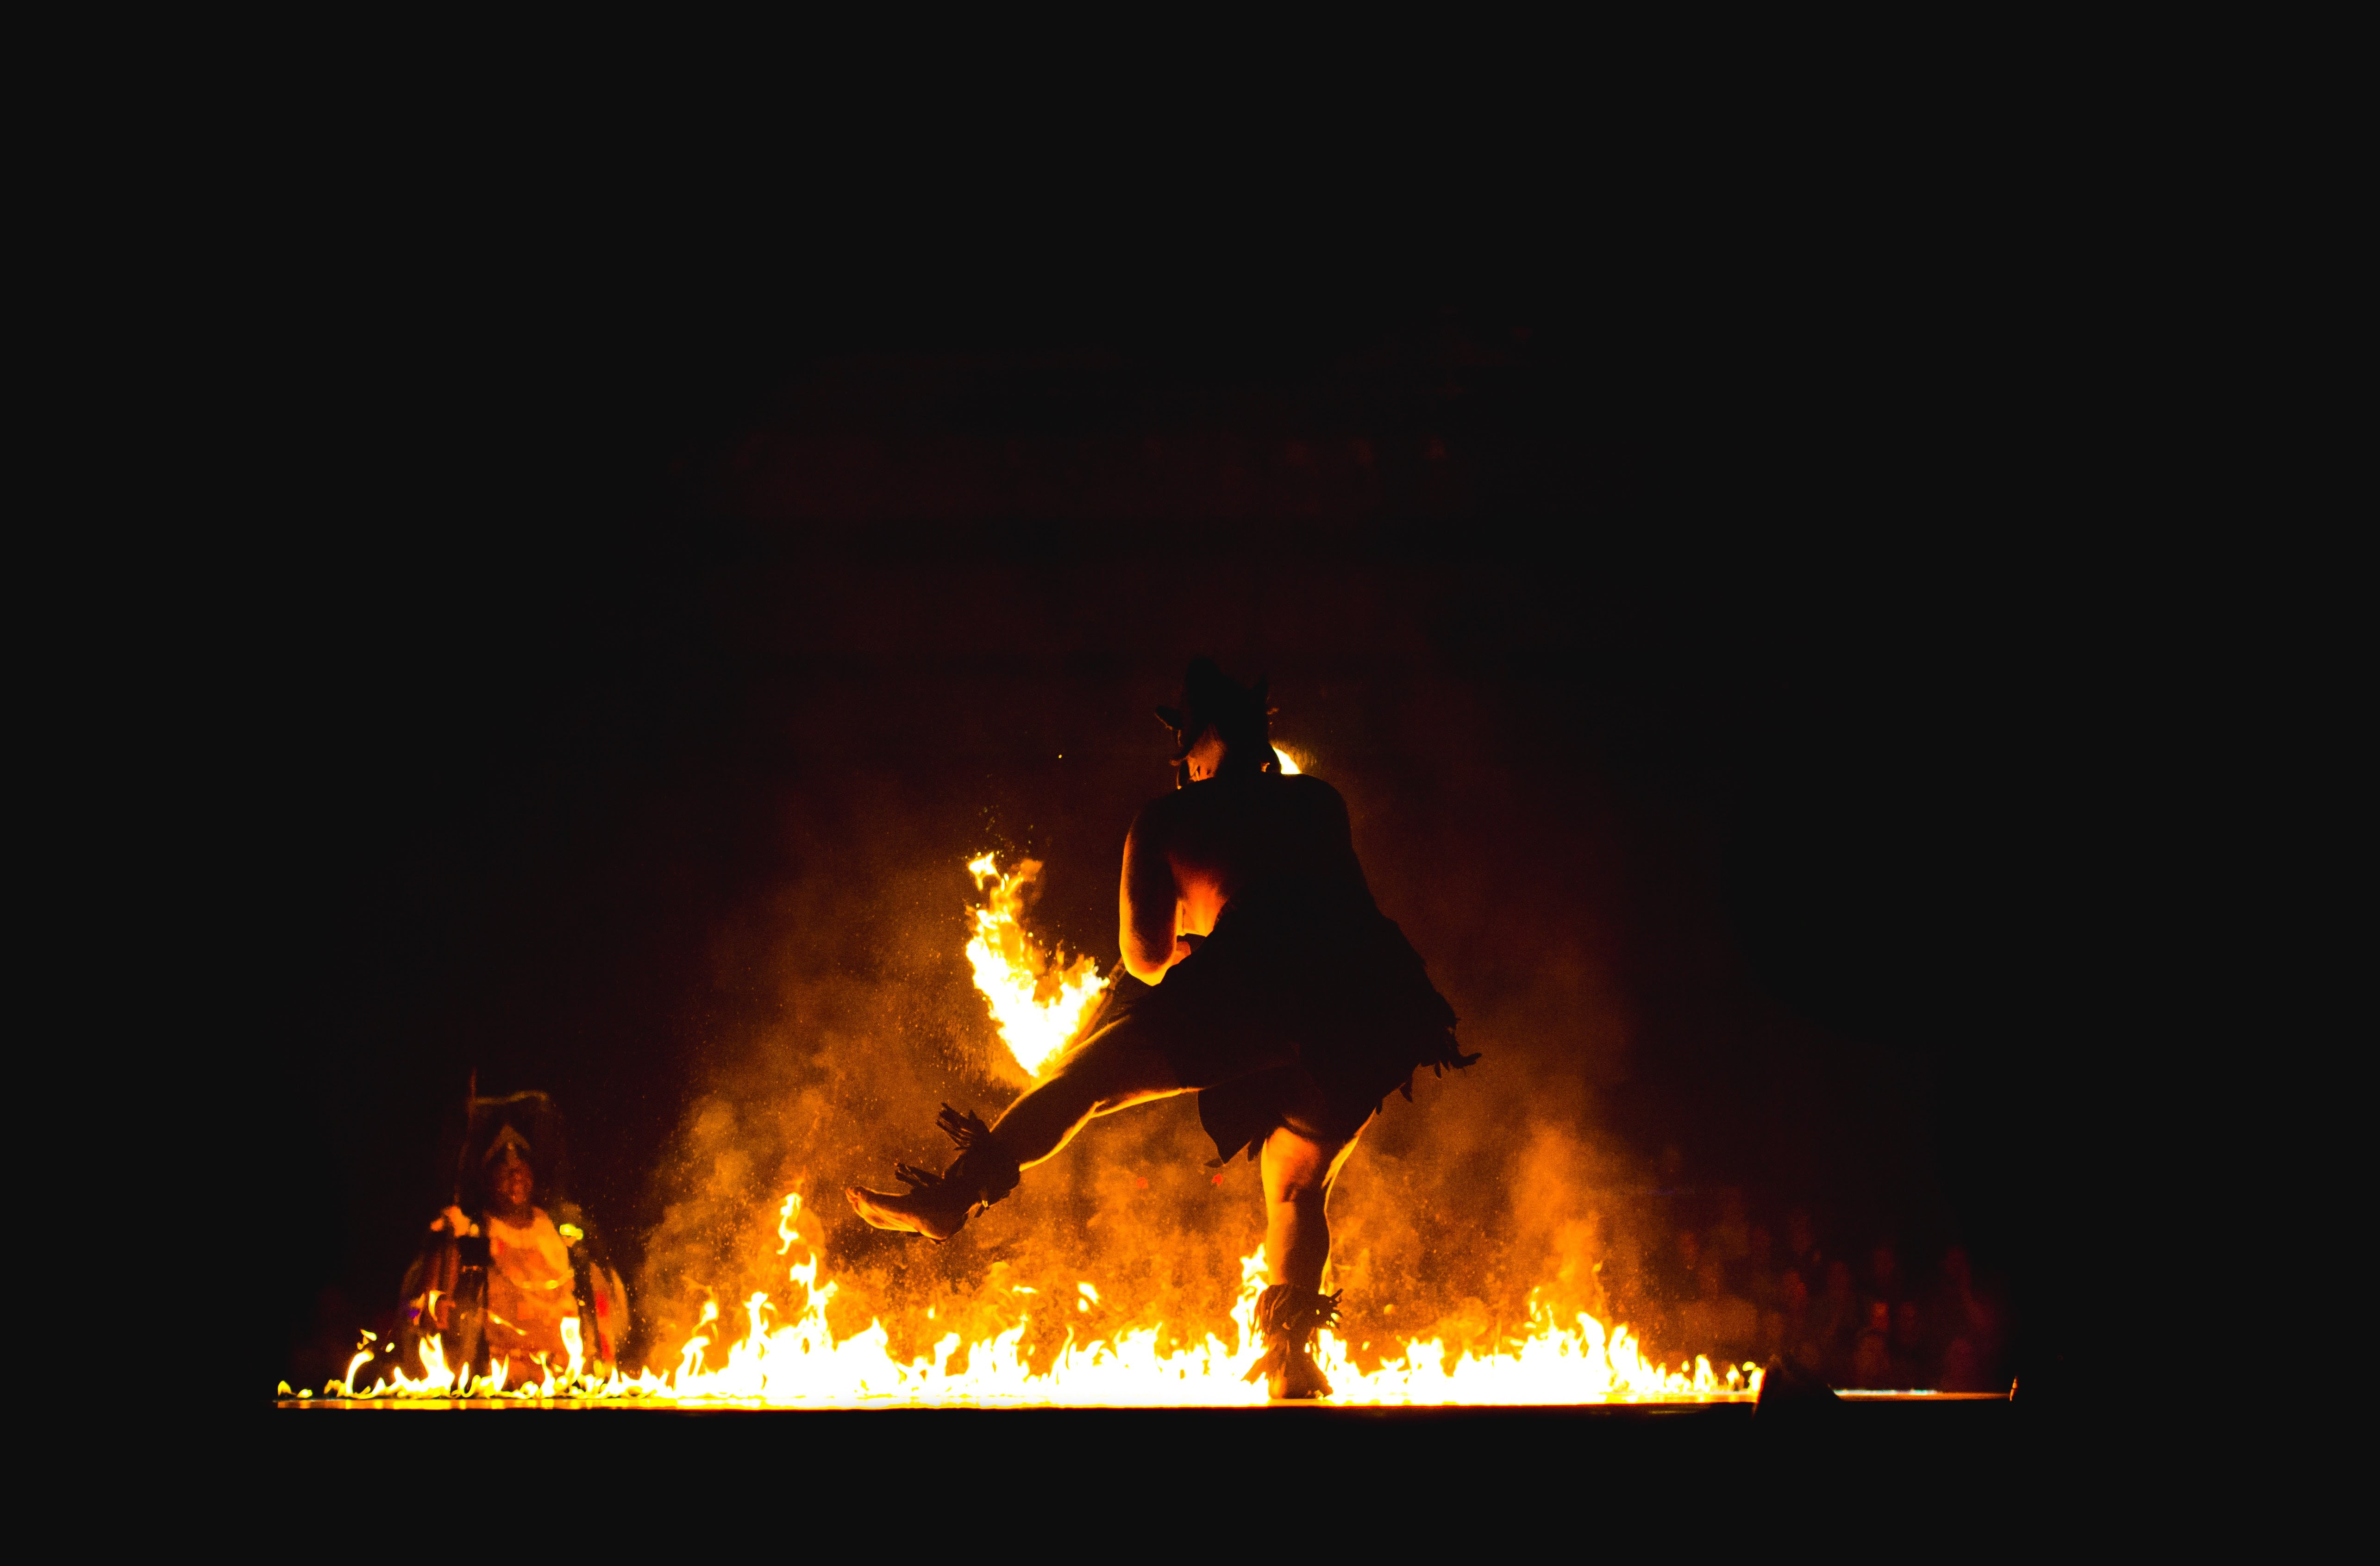 The Archetype of the Fire Woman